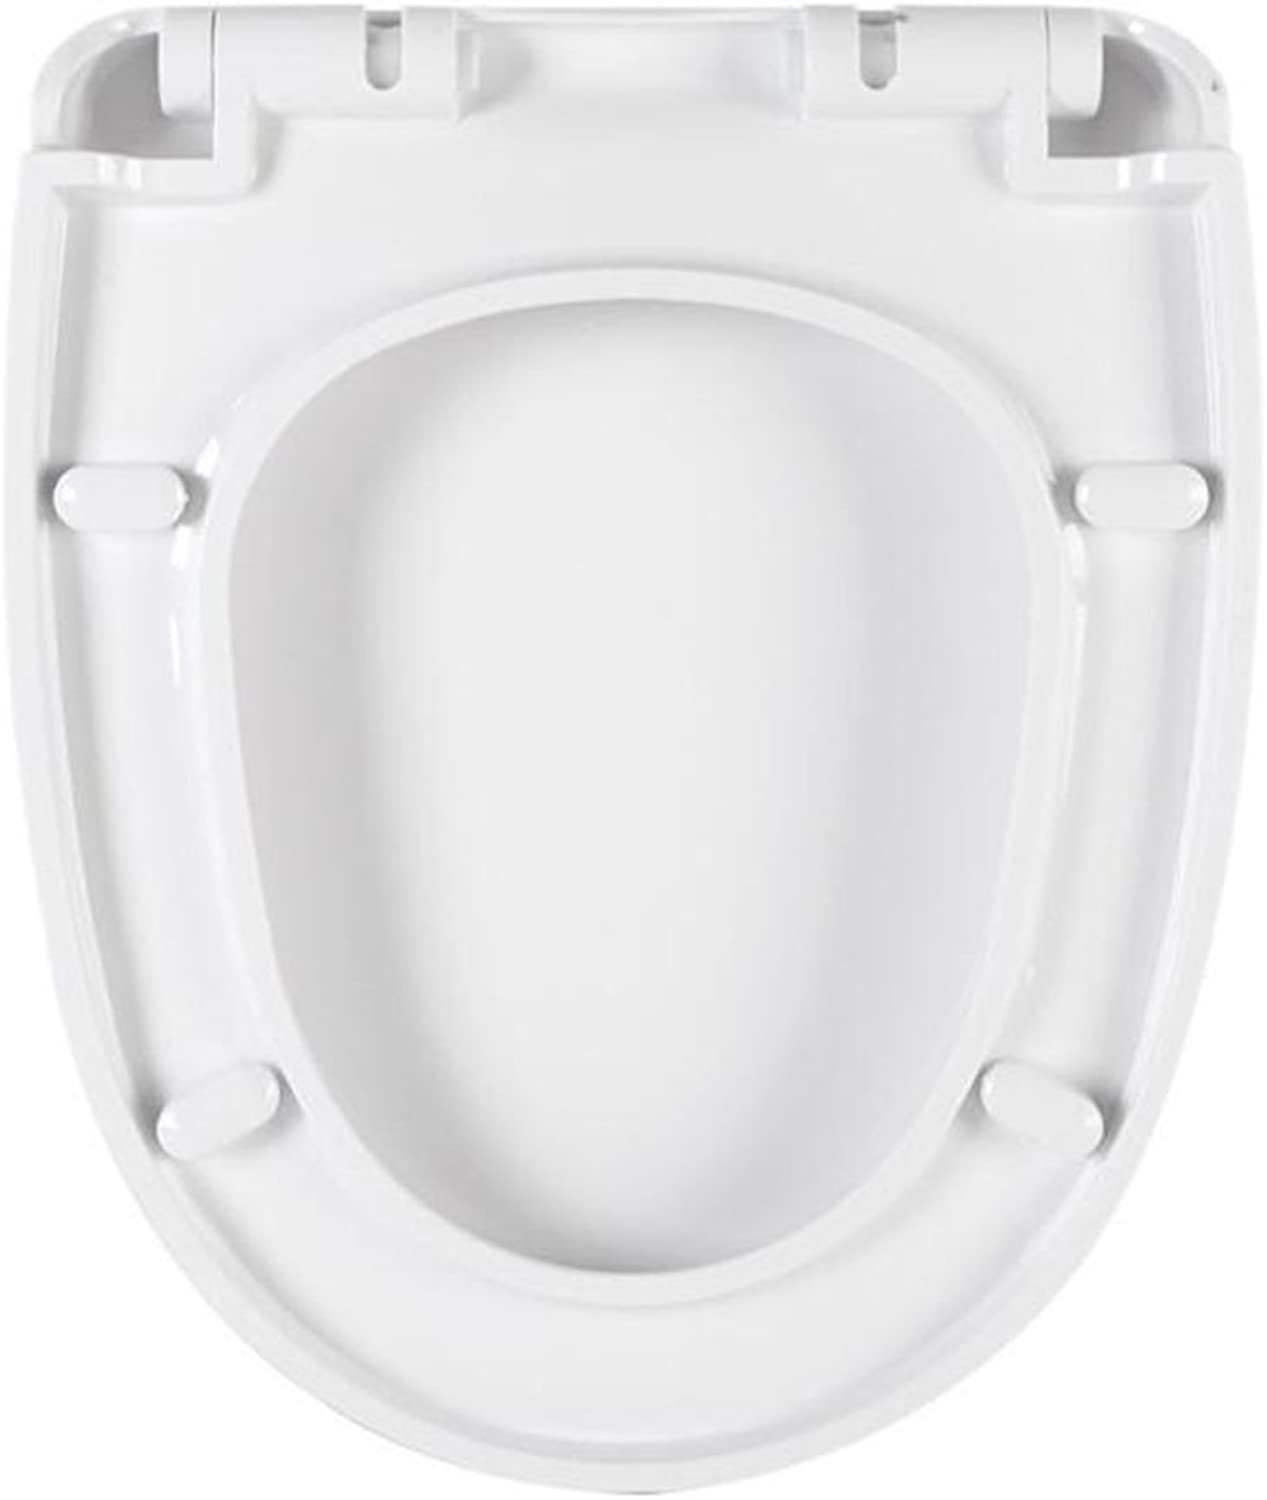 Toilet Seat U-shaped Thickened Cover Cover With Descending Toilet Plate Home,White-345  414mm